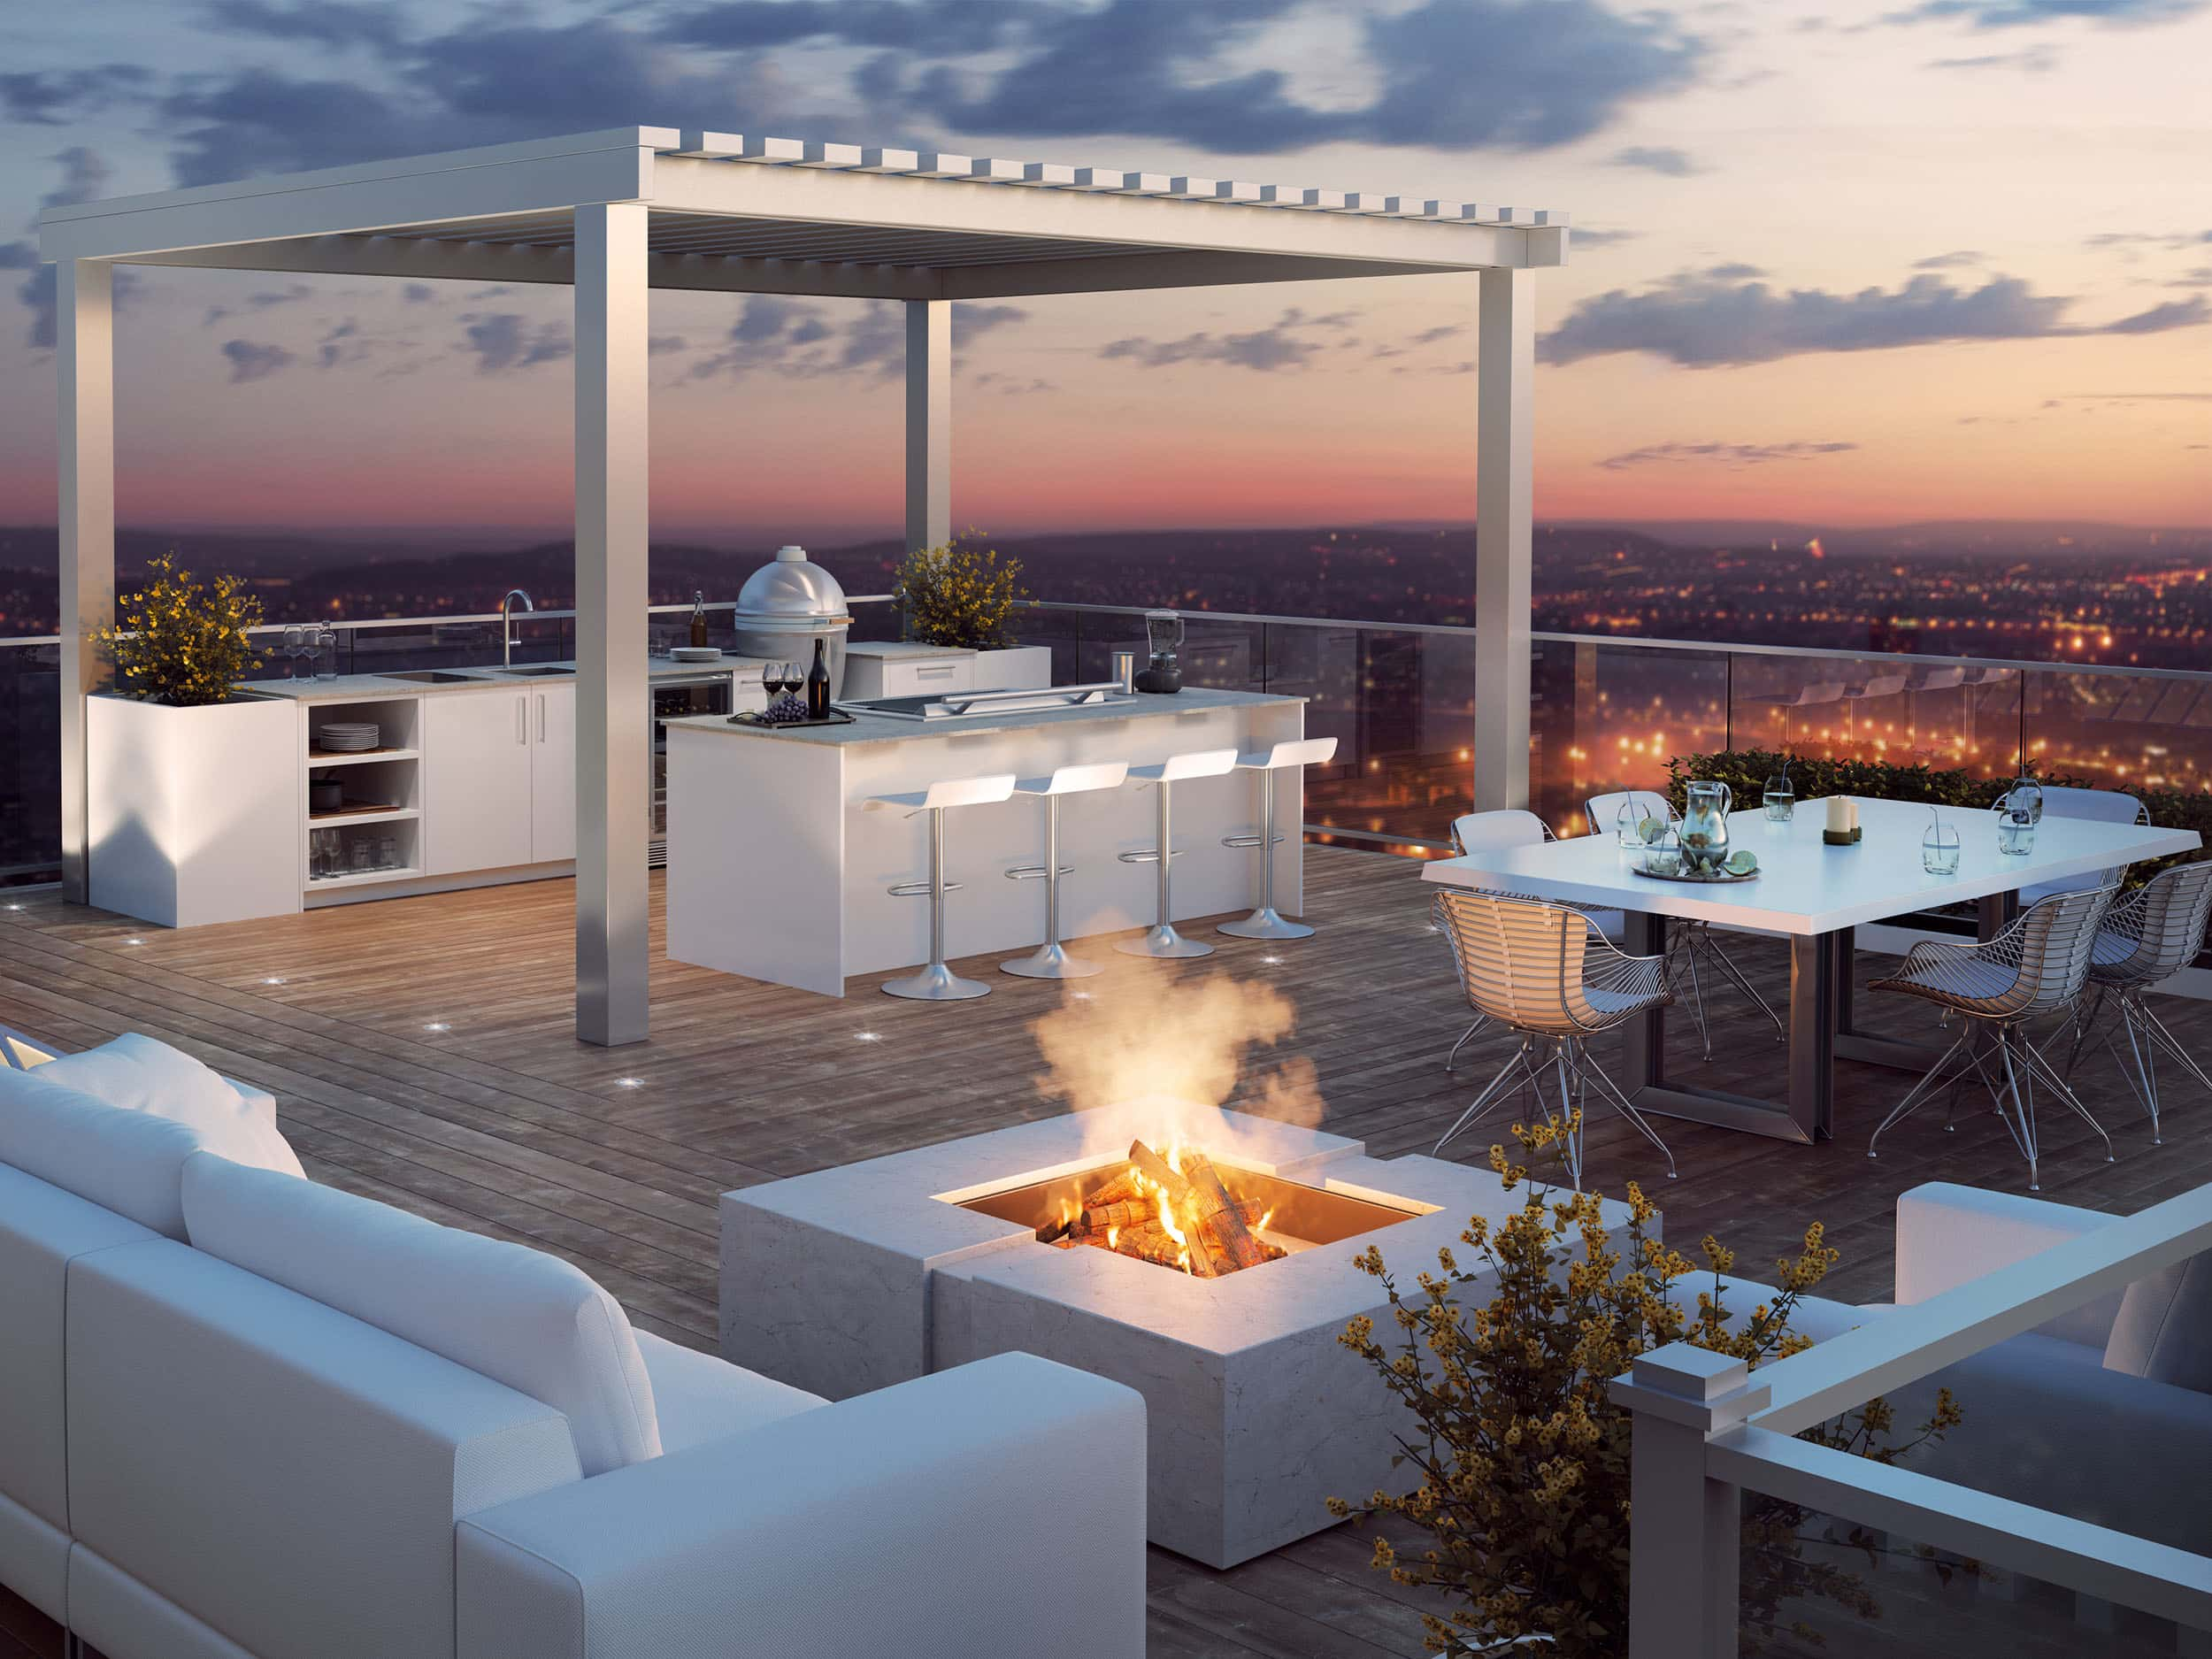 Enjoy home cooking in fresh air with this Outdoor Kitchen from Urban Bonfire and DCS.